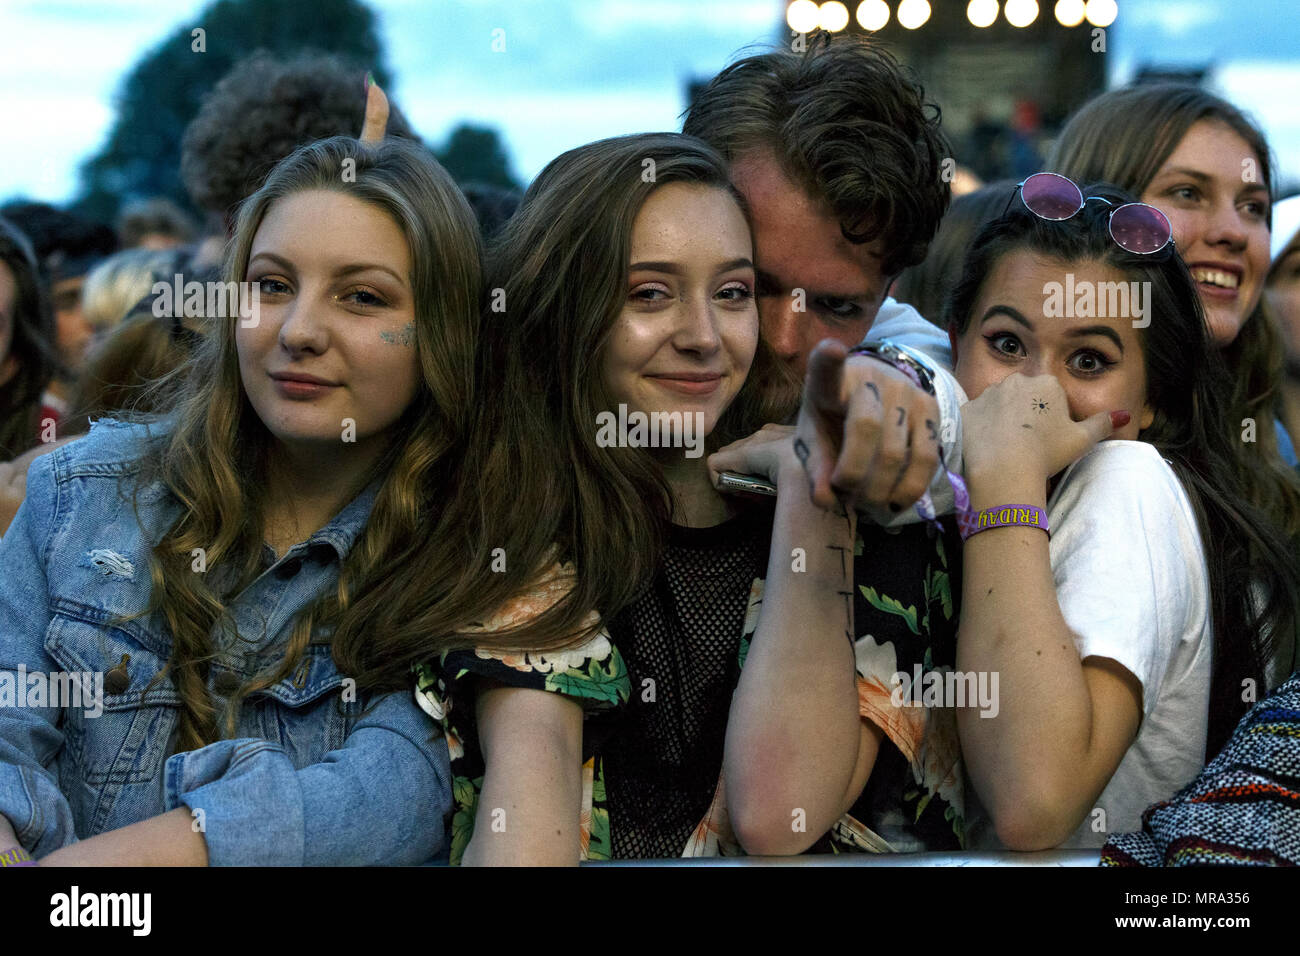 Teenage music fans posing for a photo at a music festival while waiting for a performance by The 1975. - Stock Image